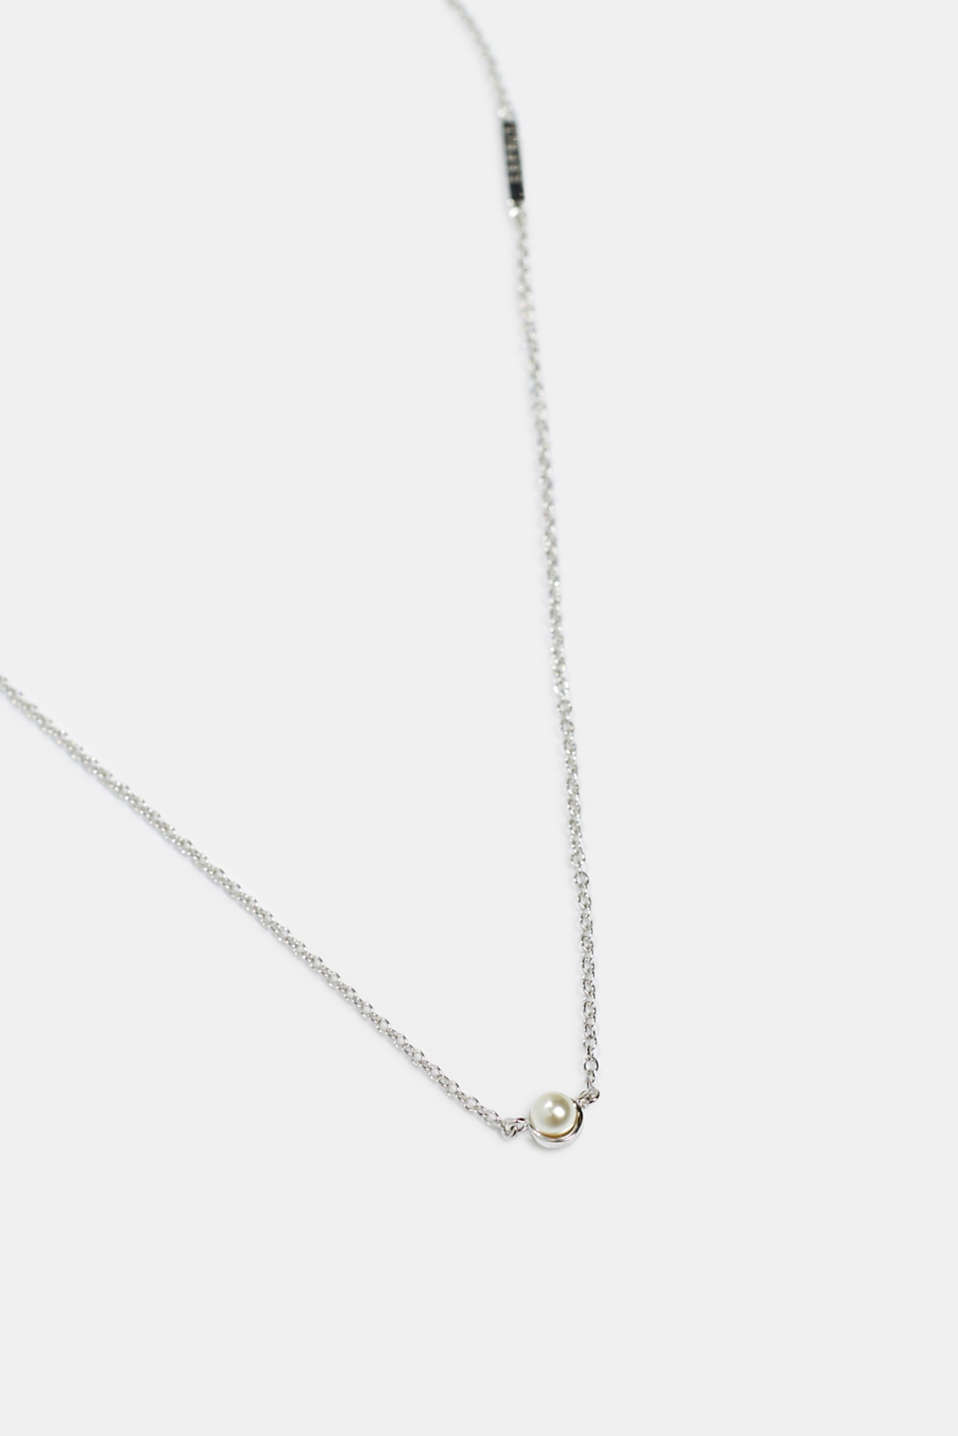 Esprit - Necklace with a bead pendant, sterling silver